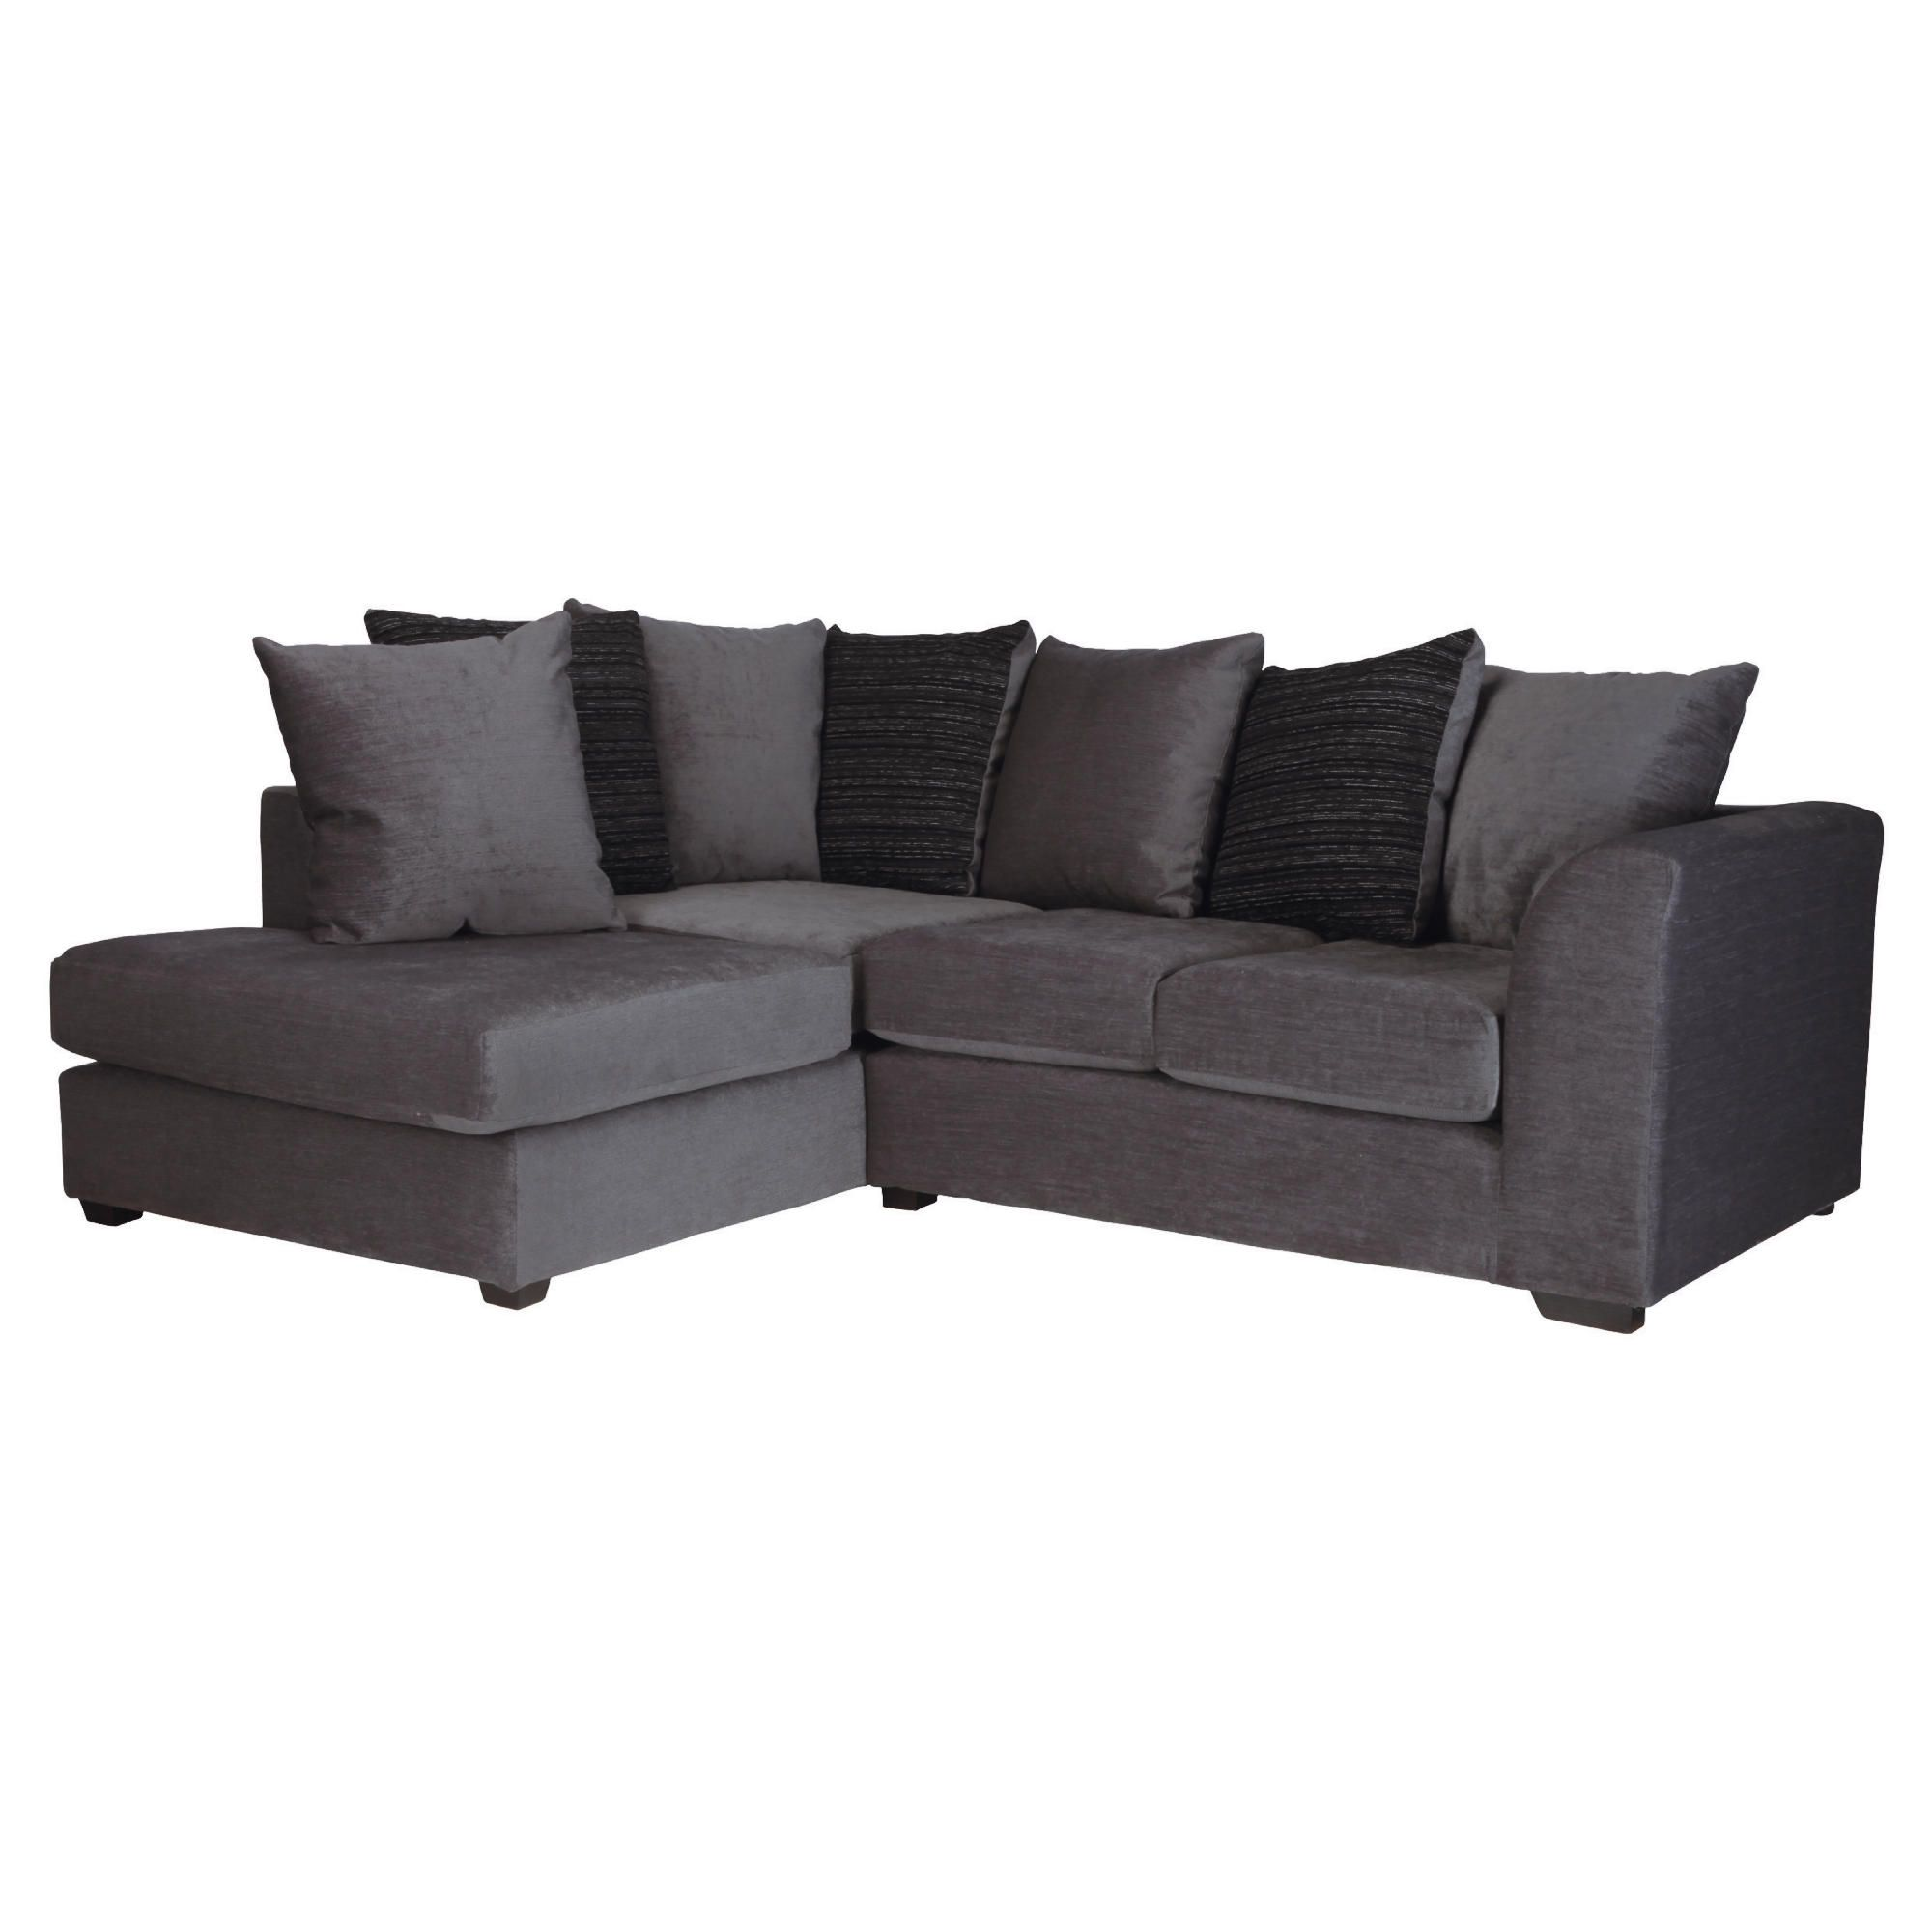 Ontario Fabric Corner Left Hand Facing Sofa, Charcoal at Tesco Direct